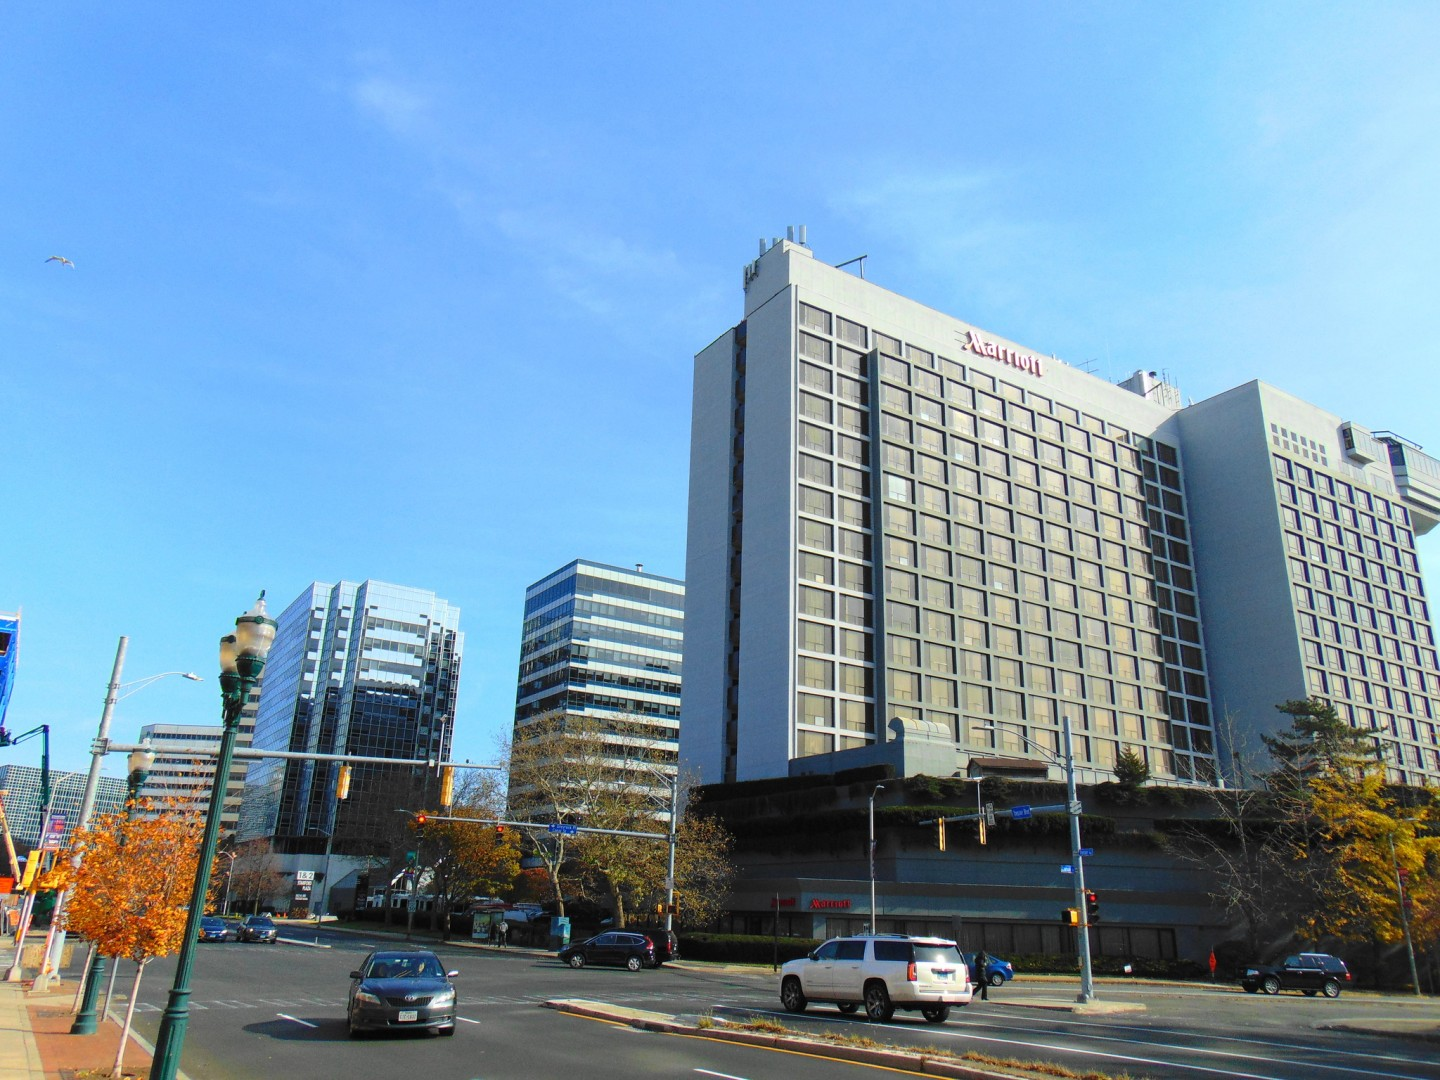 The new global HQ in Stamford, Connecticut reflects ReneSola's transition